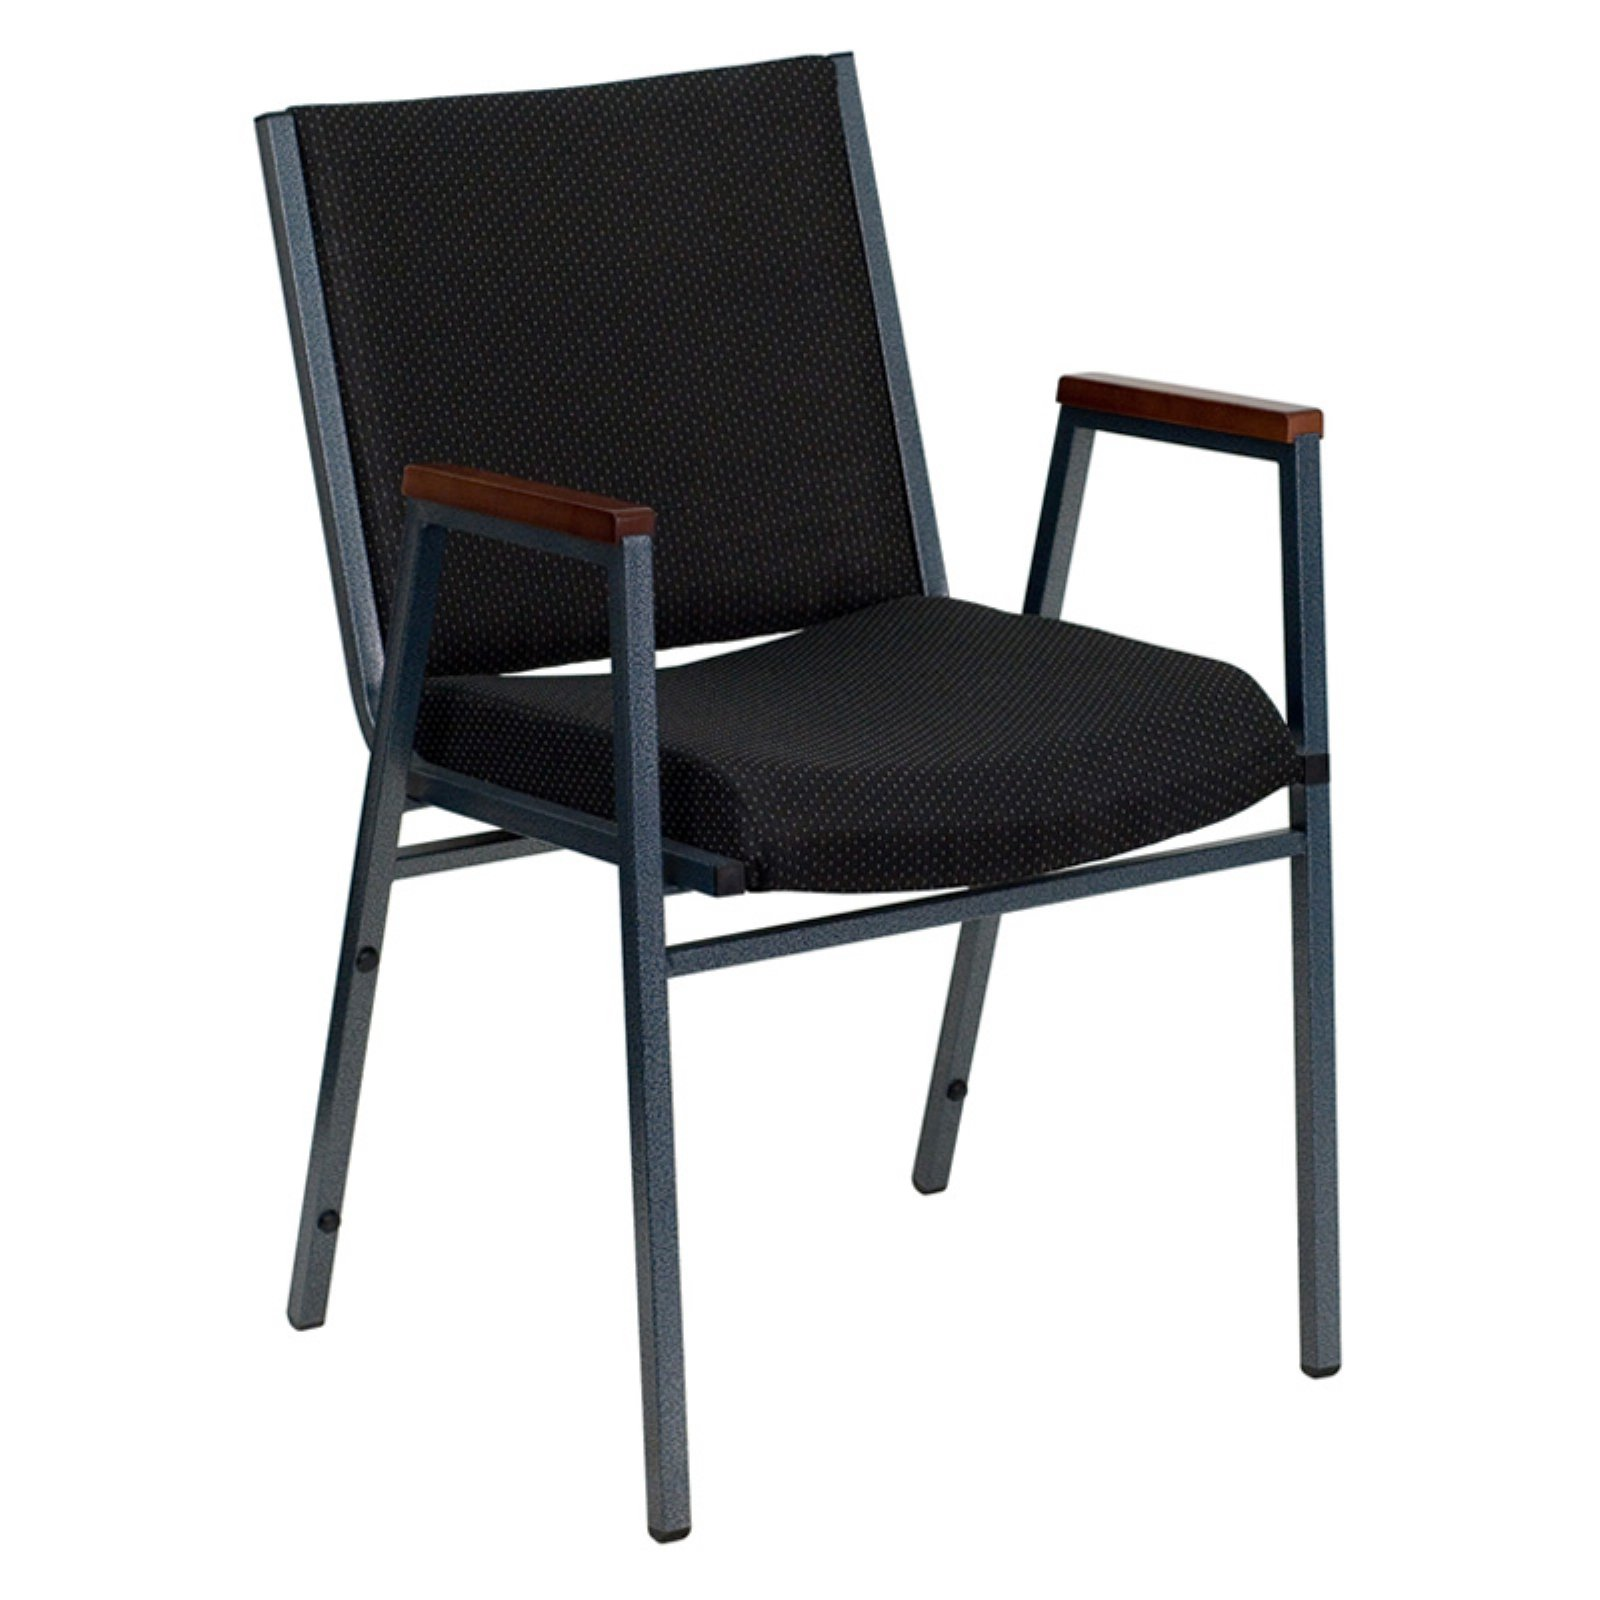 Flash Furniture HERCULES Series Heavy Duty, 3'' Thickly Padded, Patterned Upholstered Stack Chair with Arms and Ganging Bracket, Multiple Colors